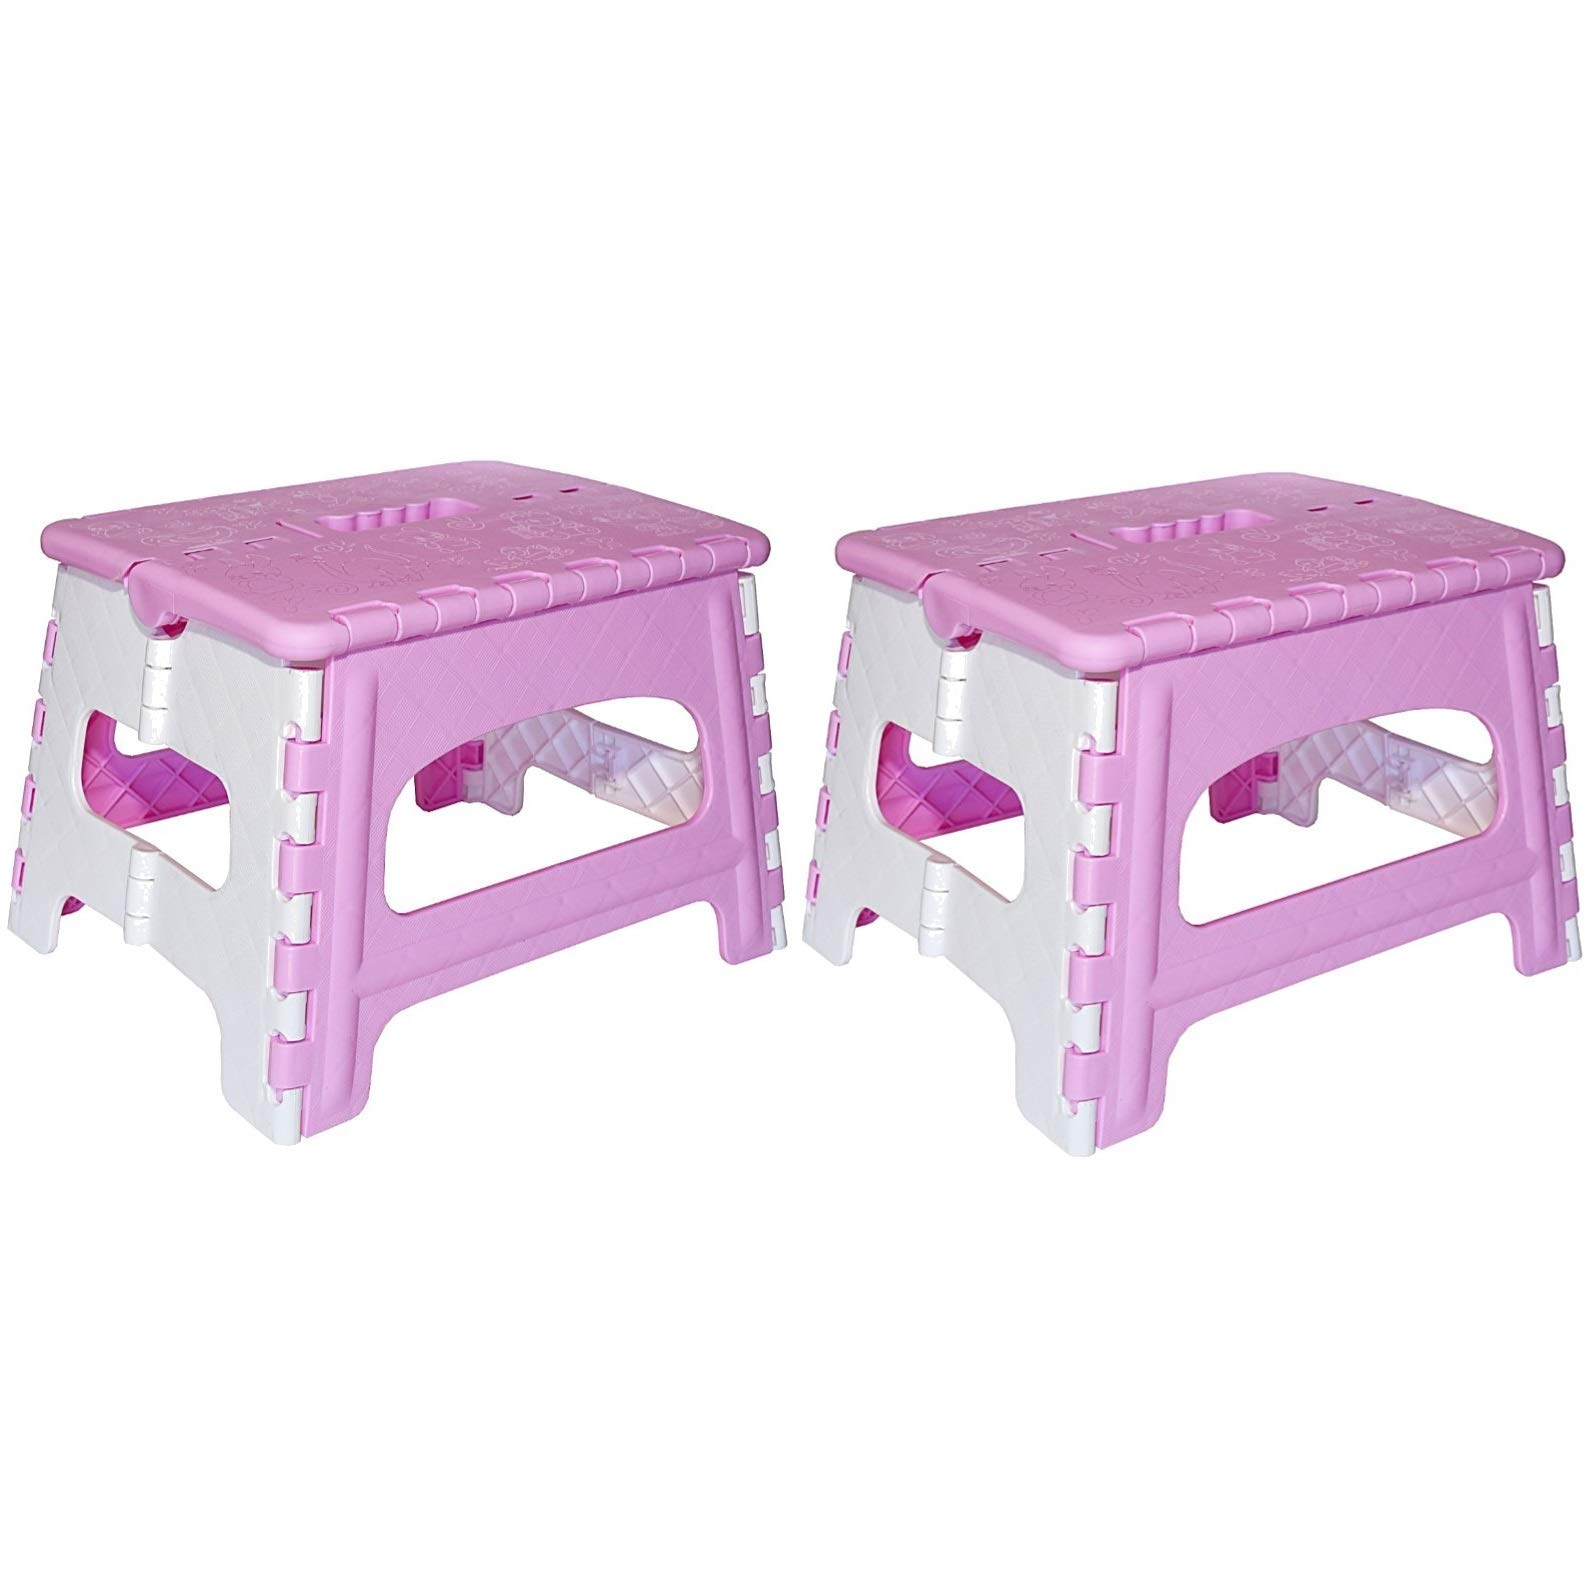 Green Direct Kids Step Stool – A Great Adult Bedside Step Stool – The Ideal folding Step Stool (Pink), 2 Count